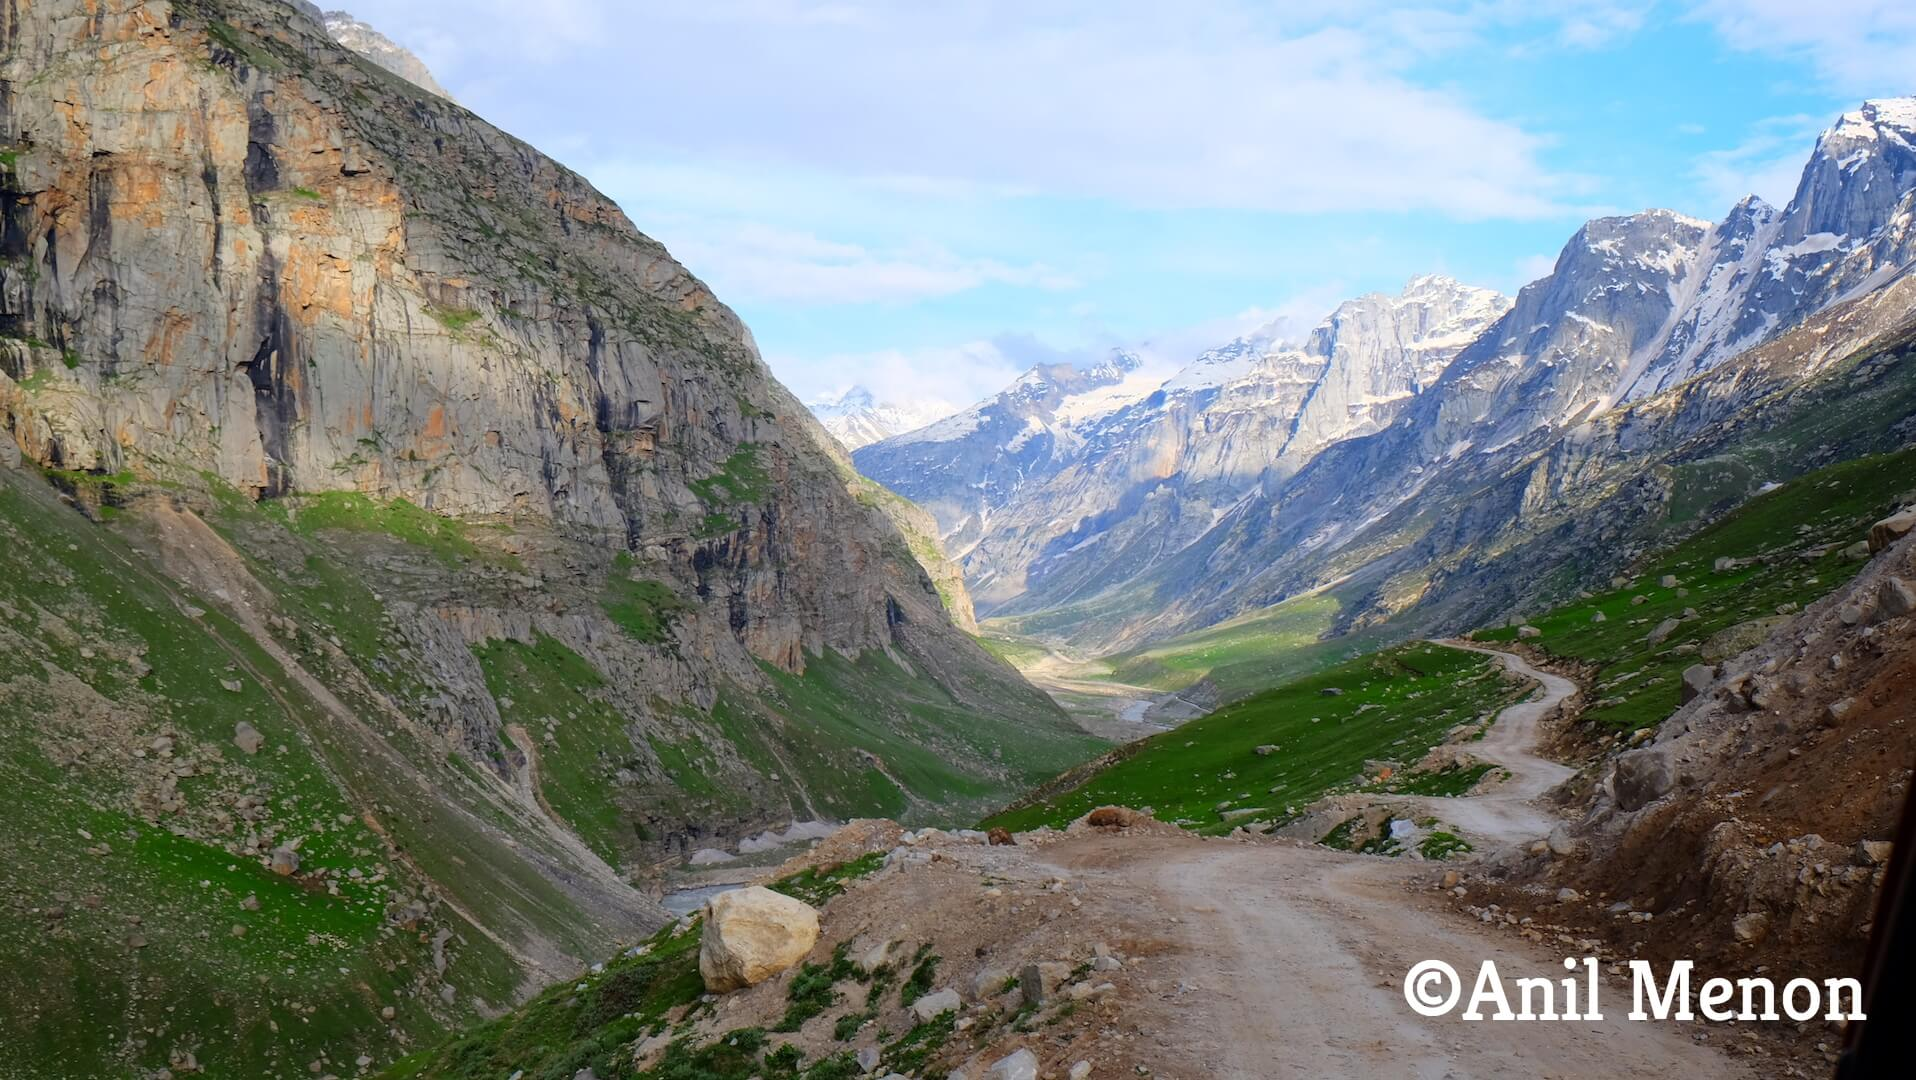 A photo of some dirt roads in the Himalayas surrounded by a majestic mountainous range